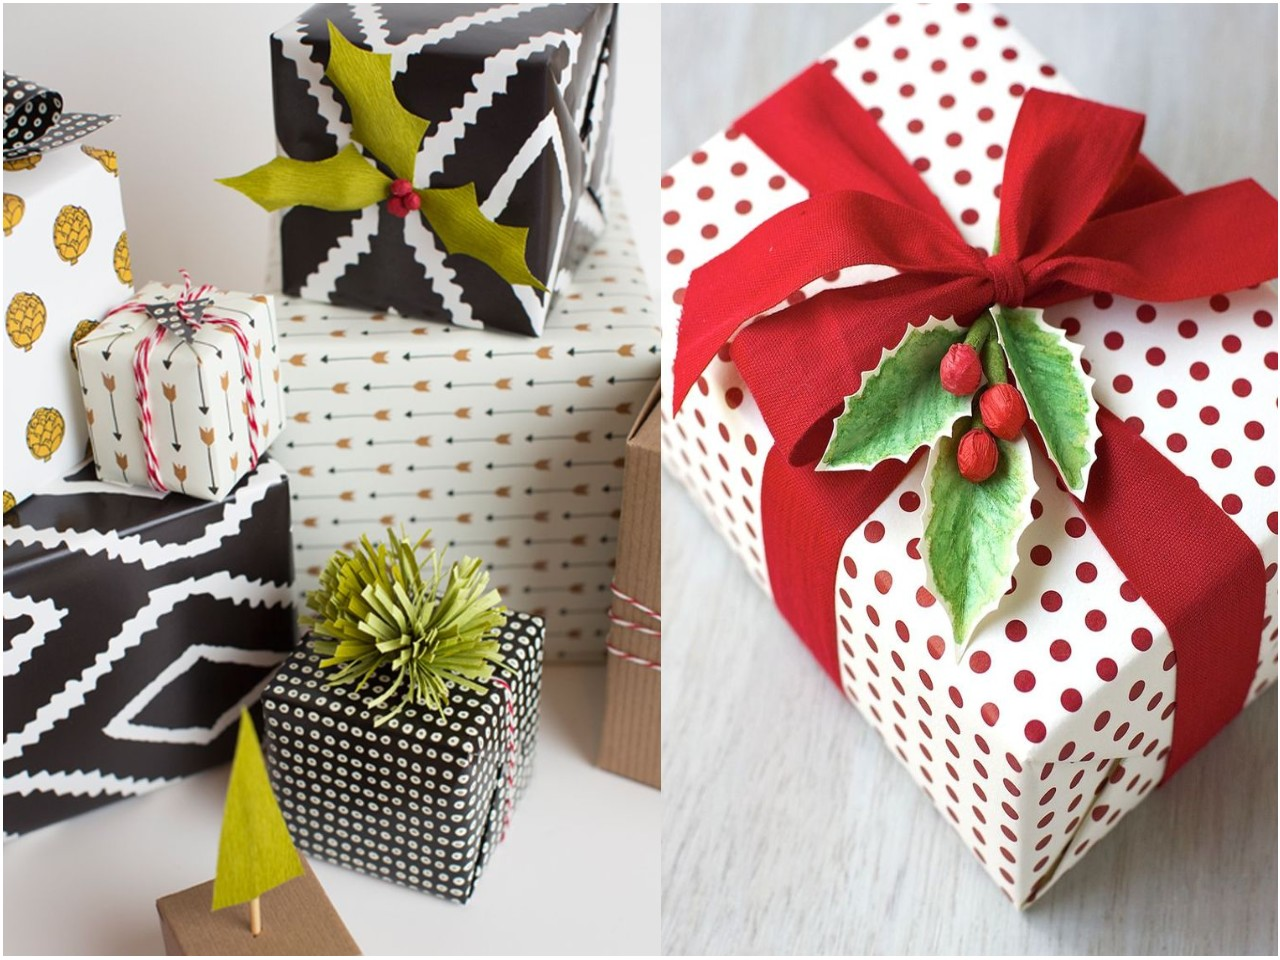 7 ideas originales para envolver regalos for Adornos navidenos para regalar